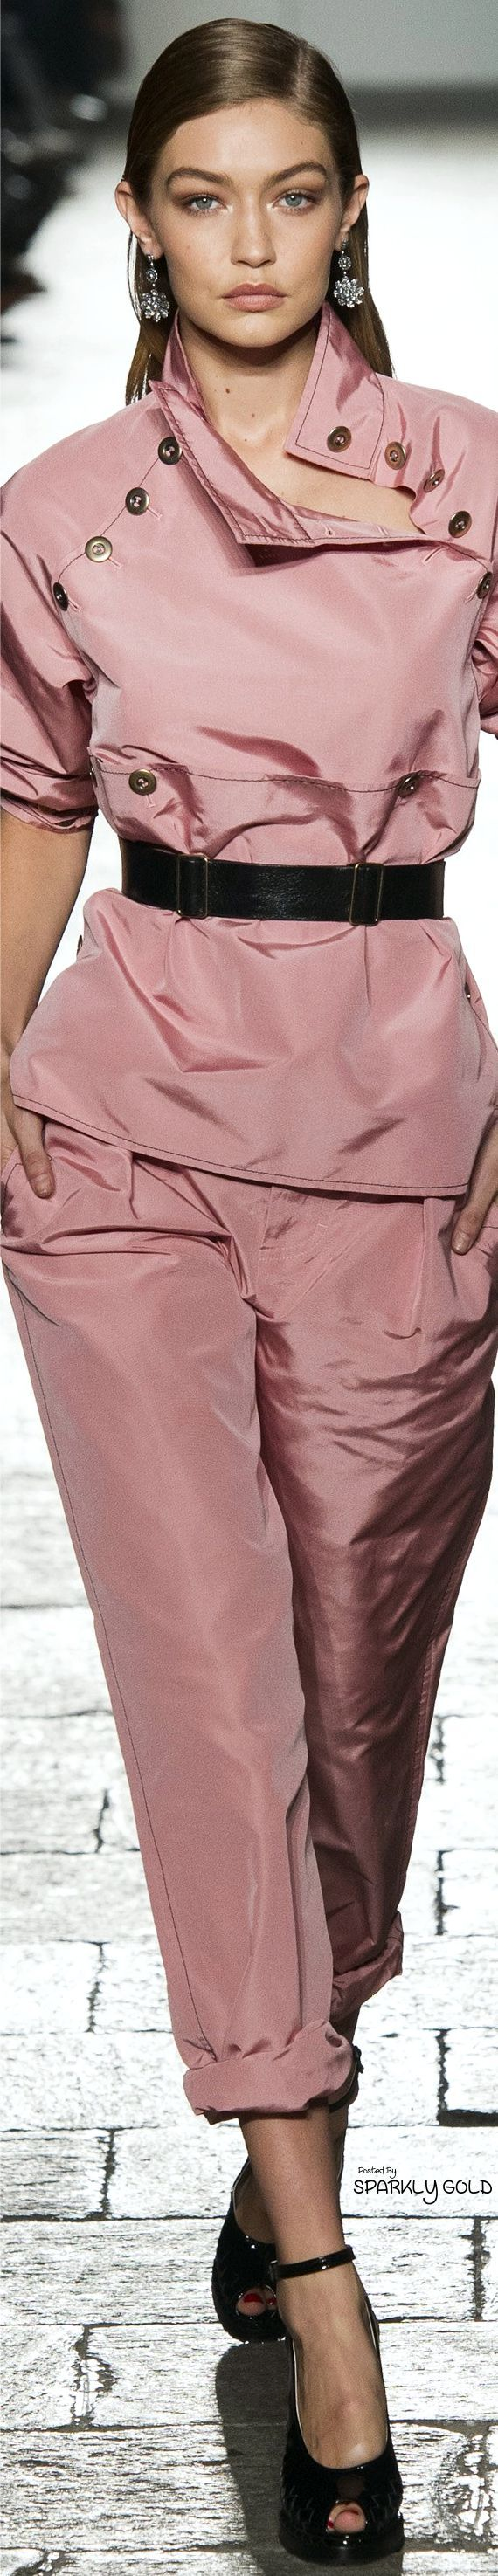 Bottega Veneta Spring 2017 RTW More Clothing, Shoes & Jewelry - Women - women's belts - http://amzn.to/2kwF6LI